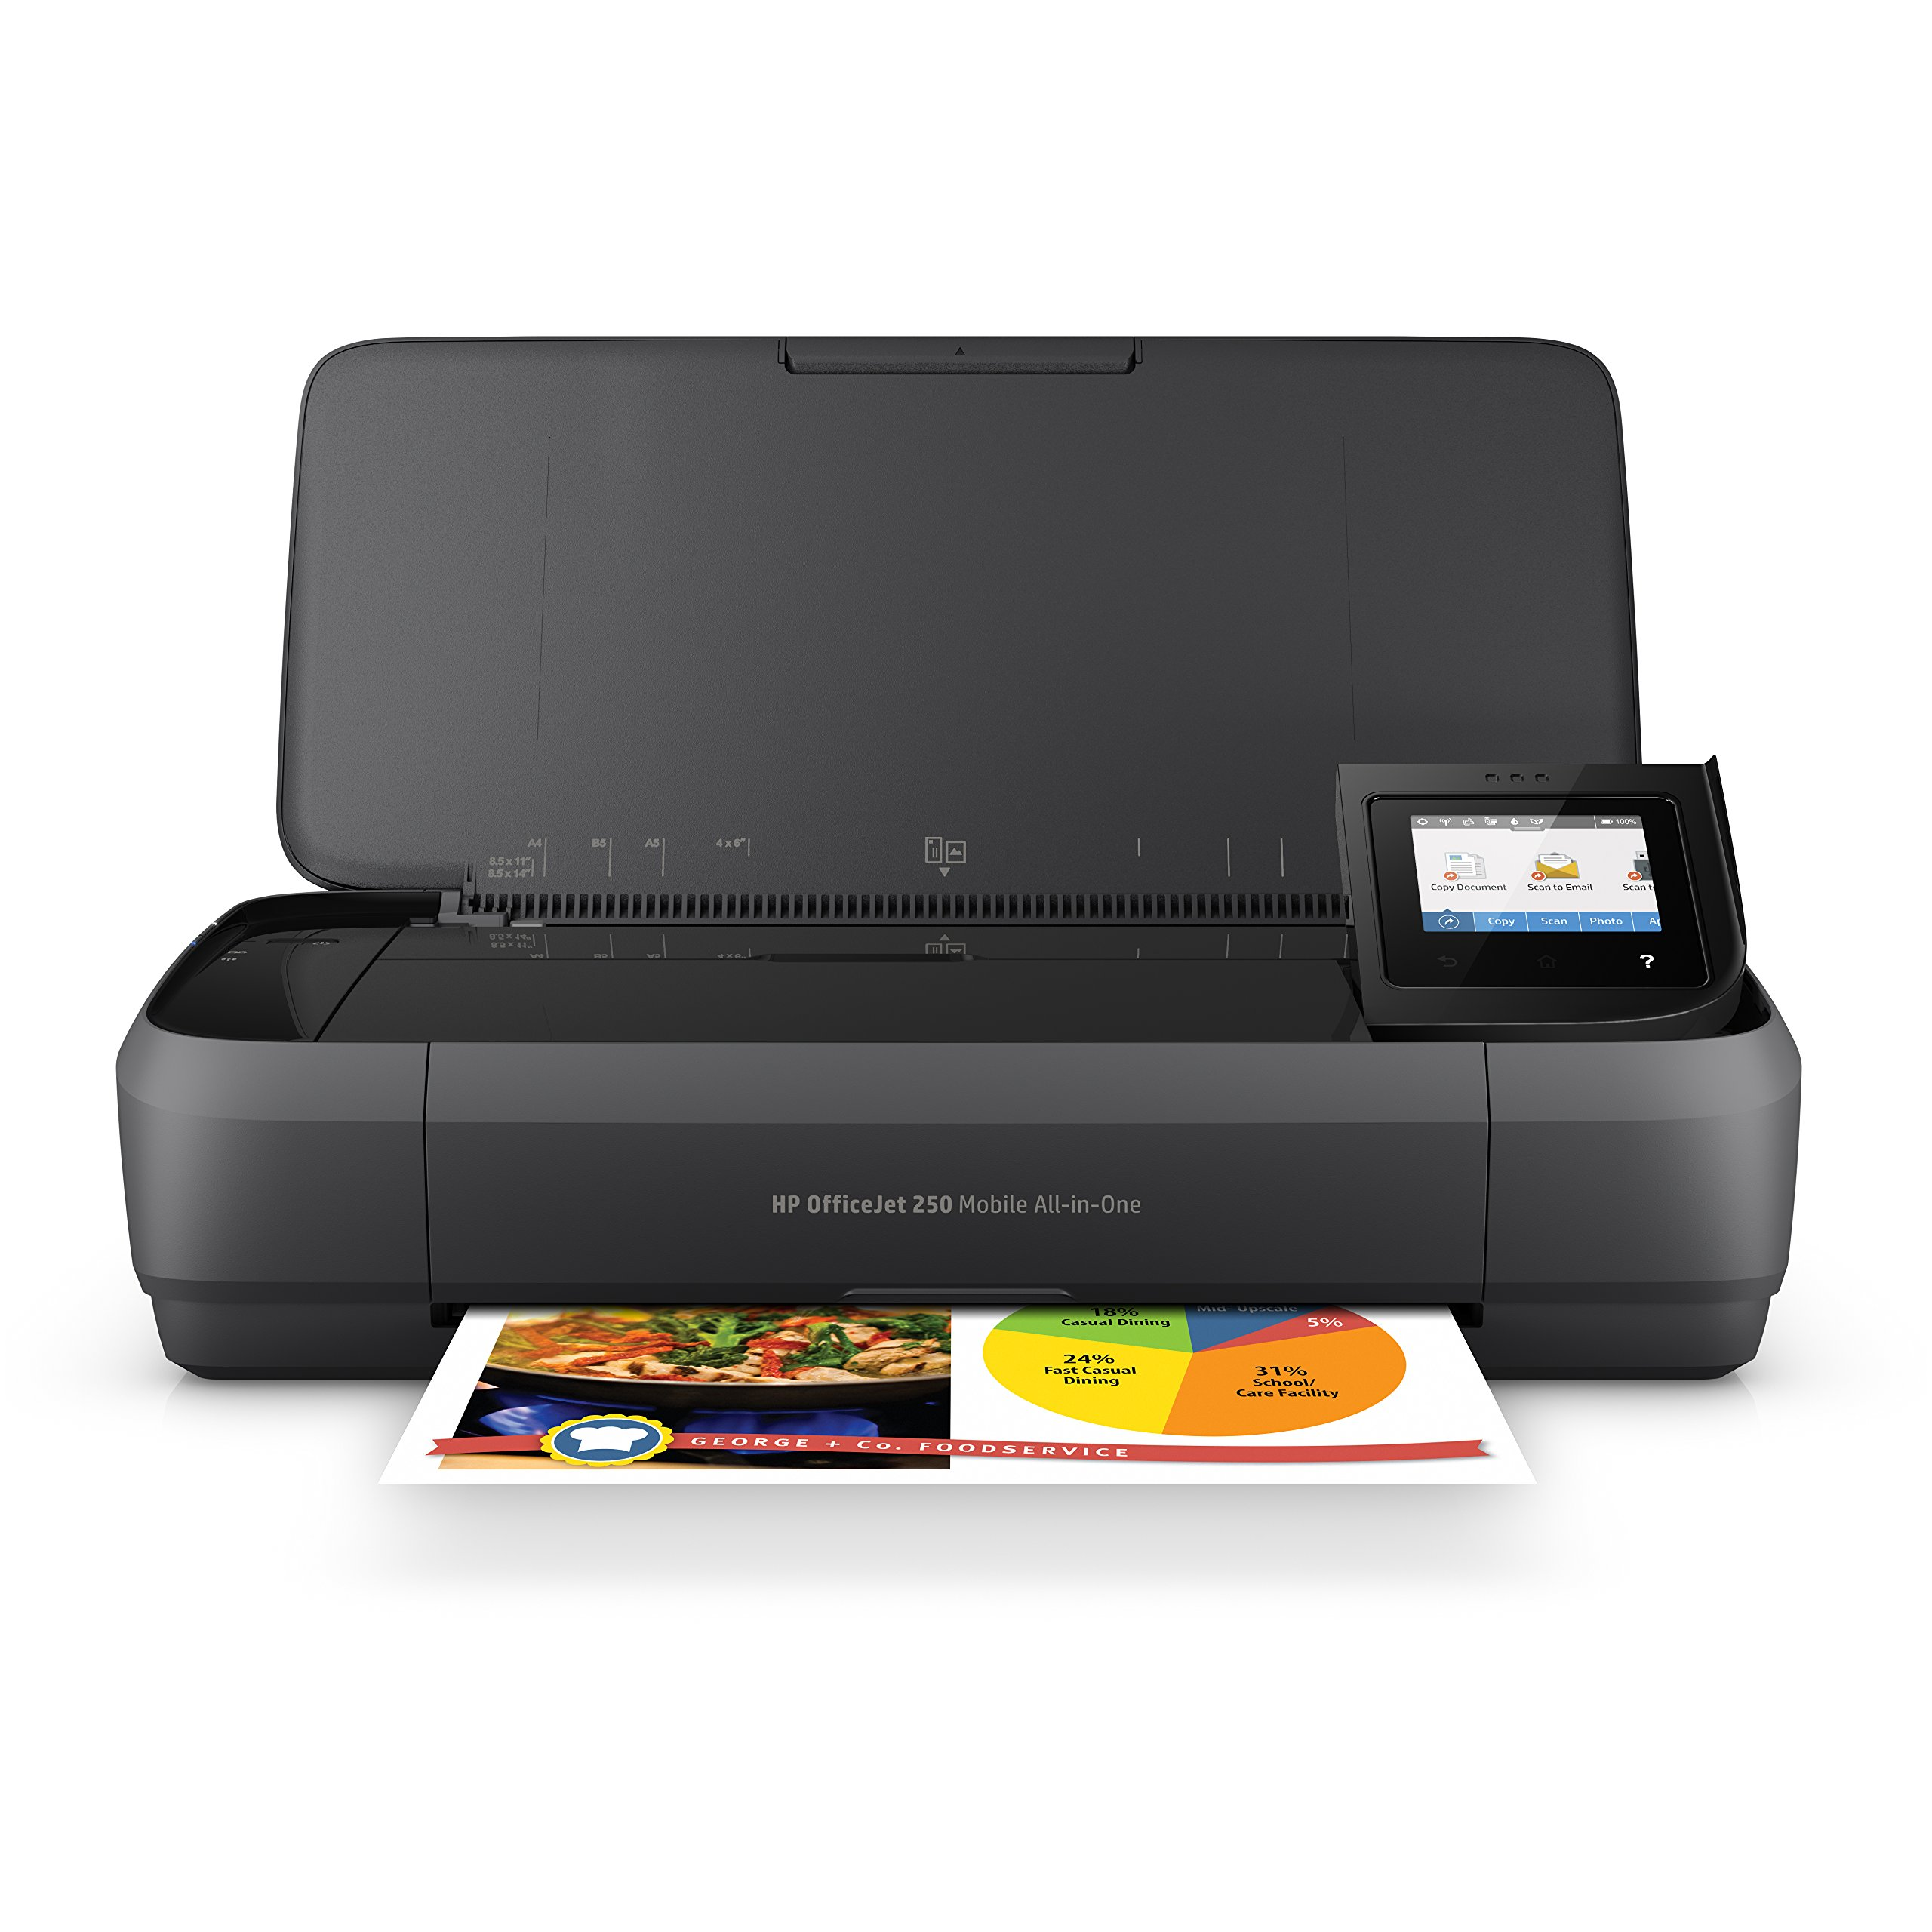 HP OfficeJet 250 All-in-One Portable Printer with Wireless & Mobile Printing (CZ992A) by HP